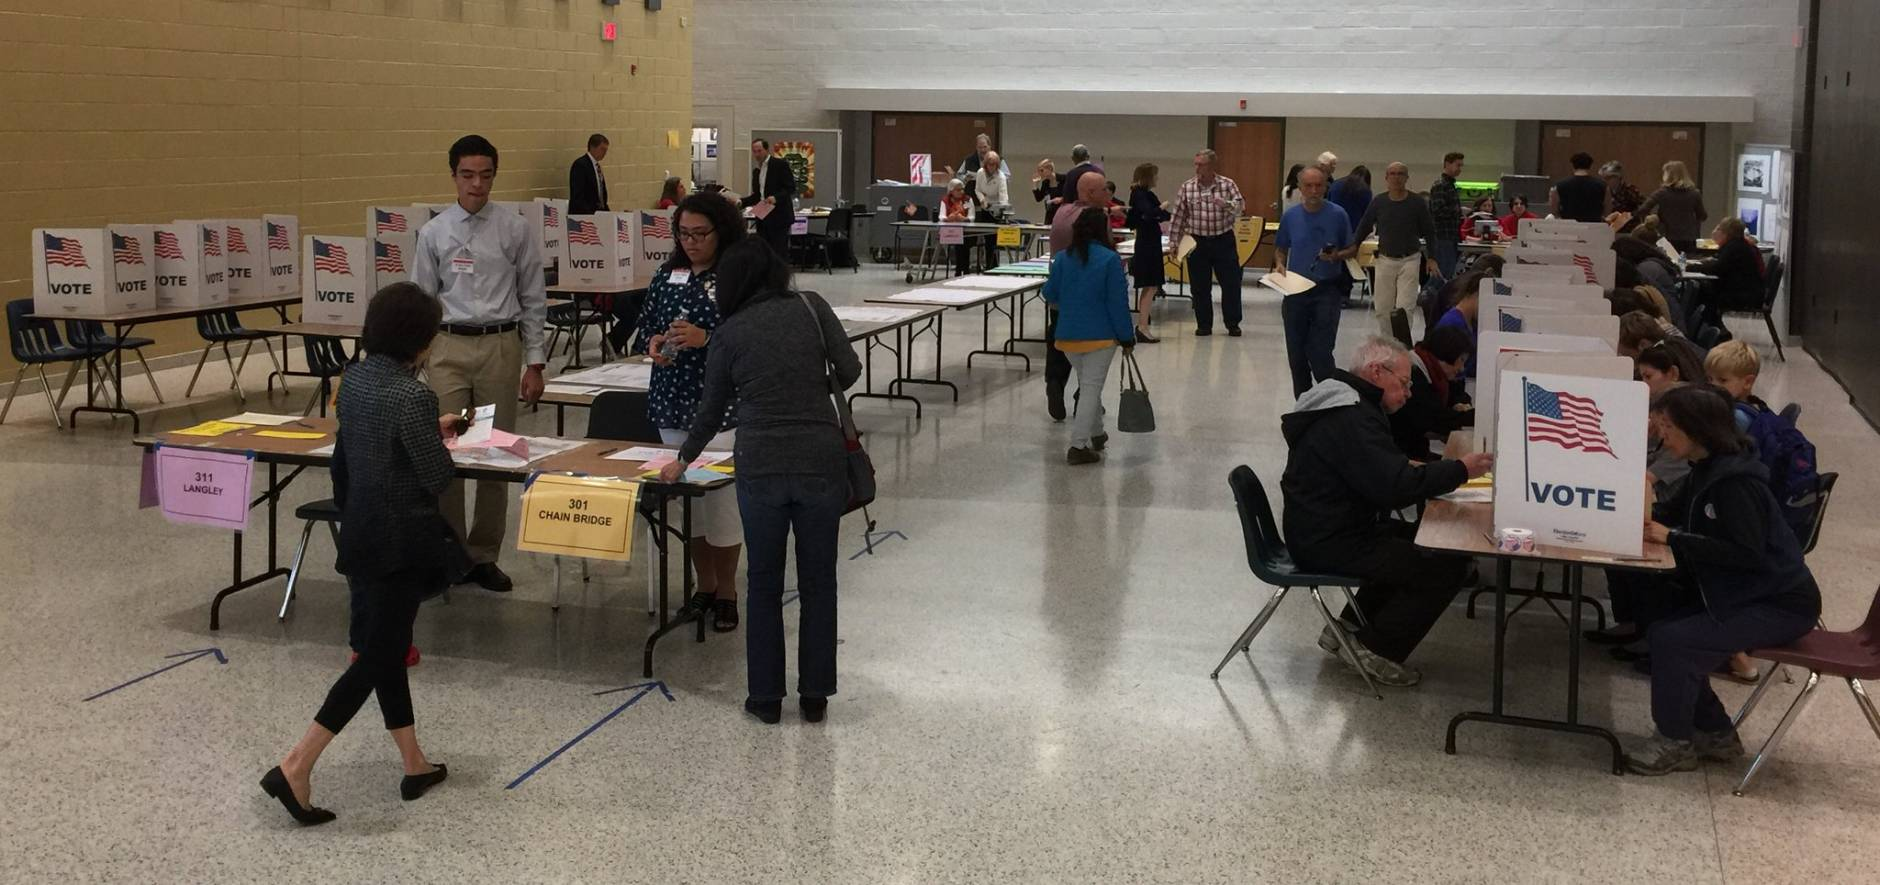 By 2:30 p.m. Va. voter turnout including absentee ballots in Langley precinct 311 is 60 percent. Chain Bridge precinct 301 is 65 percent. (WTOP/Kristi King)